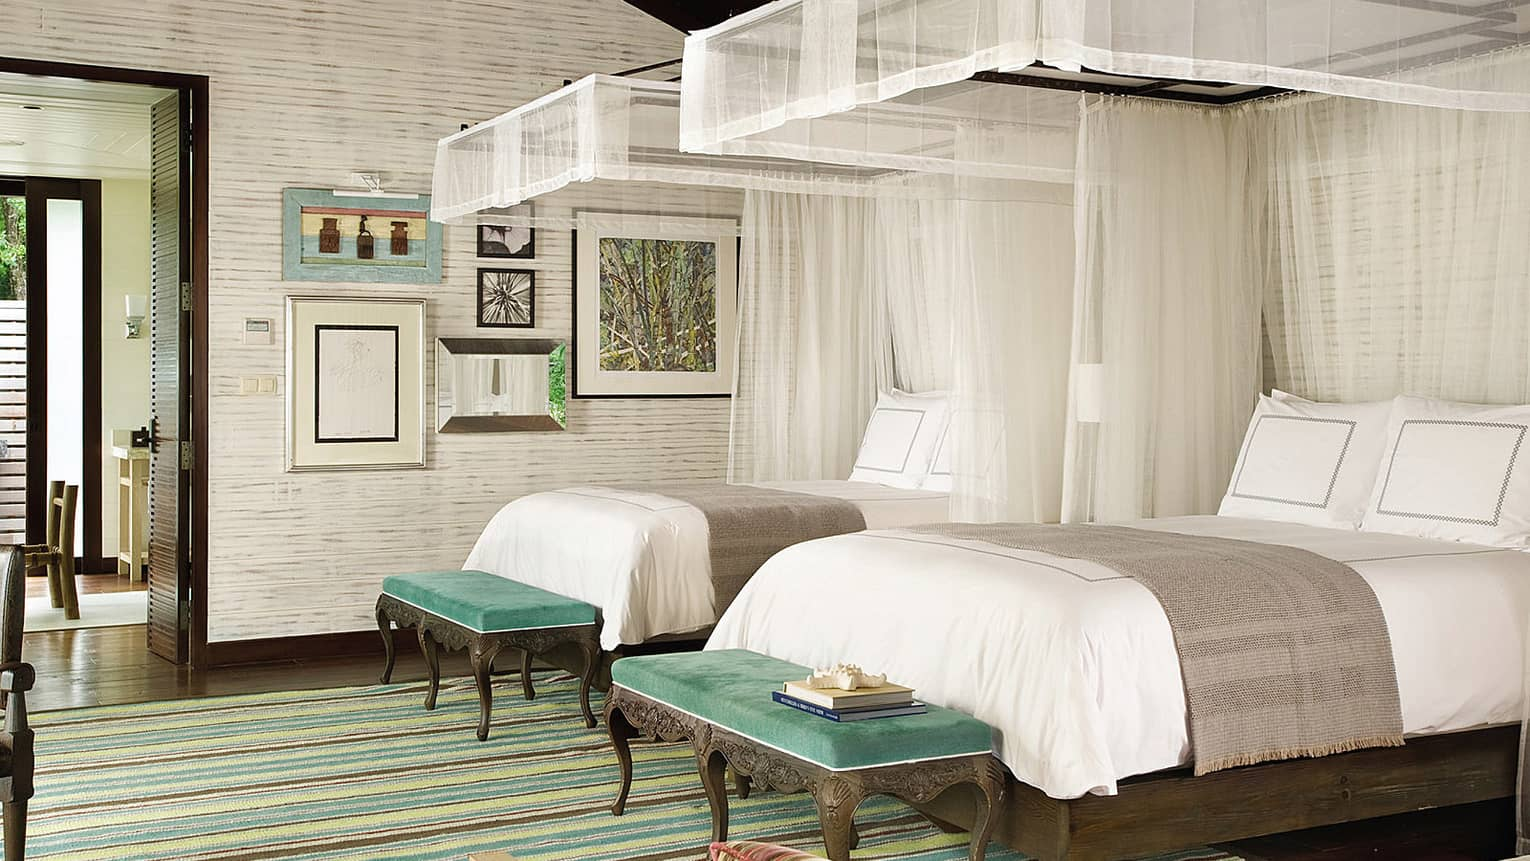 Three-Bedroom Residence Villa bedroom with double beds side-by-side, white sheer canopies, green benches